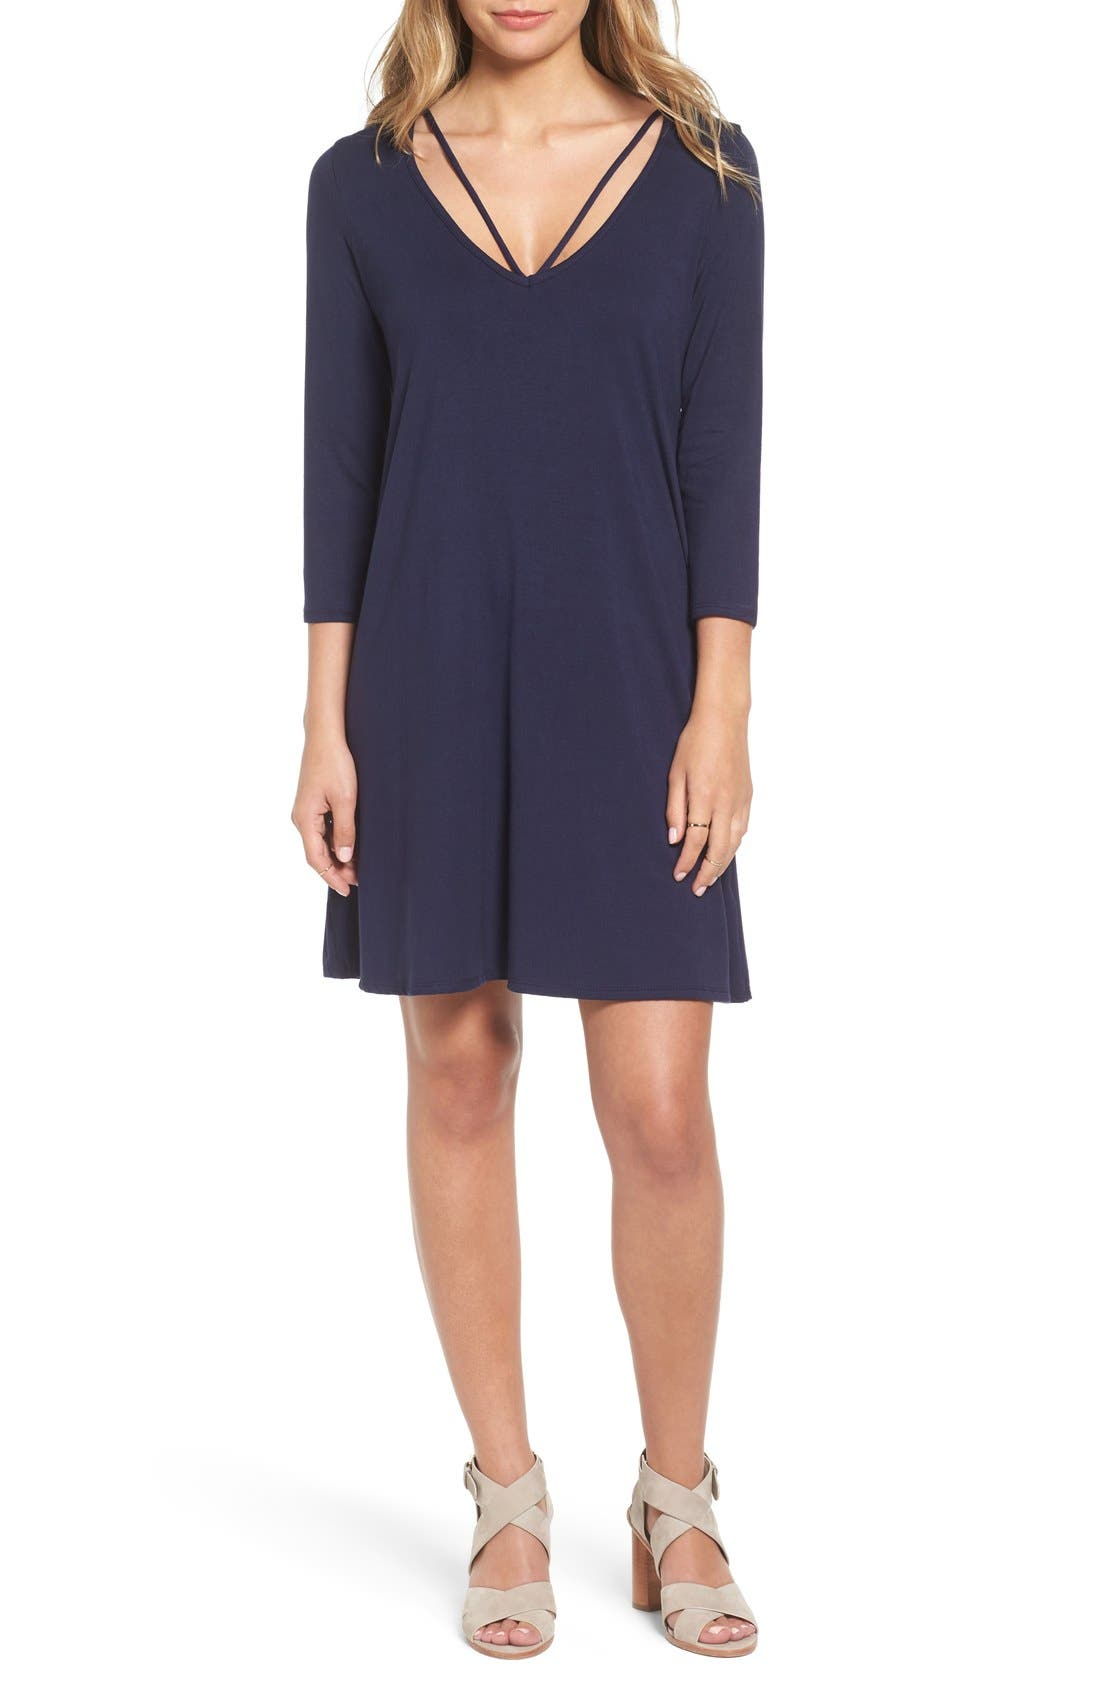 Alternate Image 1 Selected - Socialite Scoop Neck Shift Dress